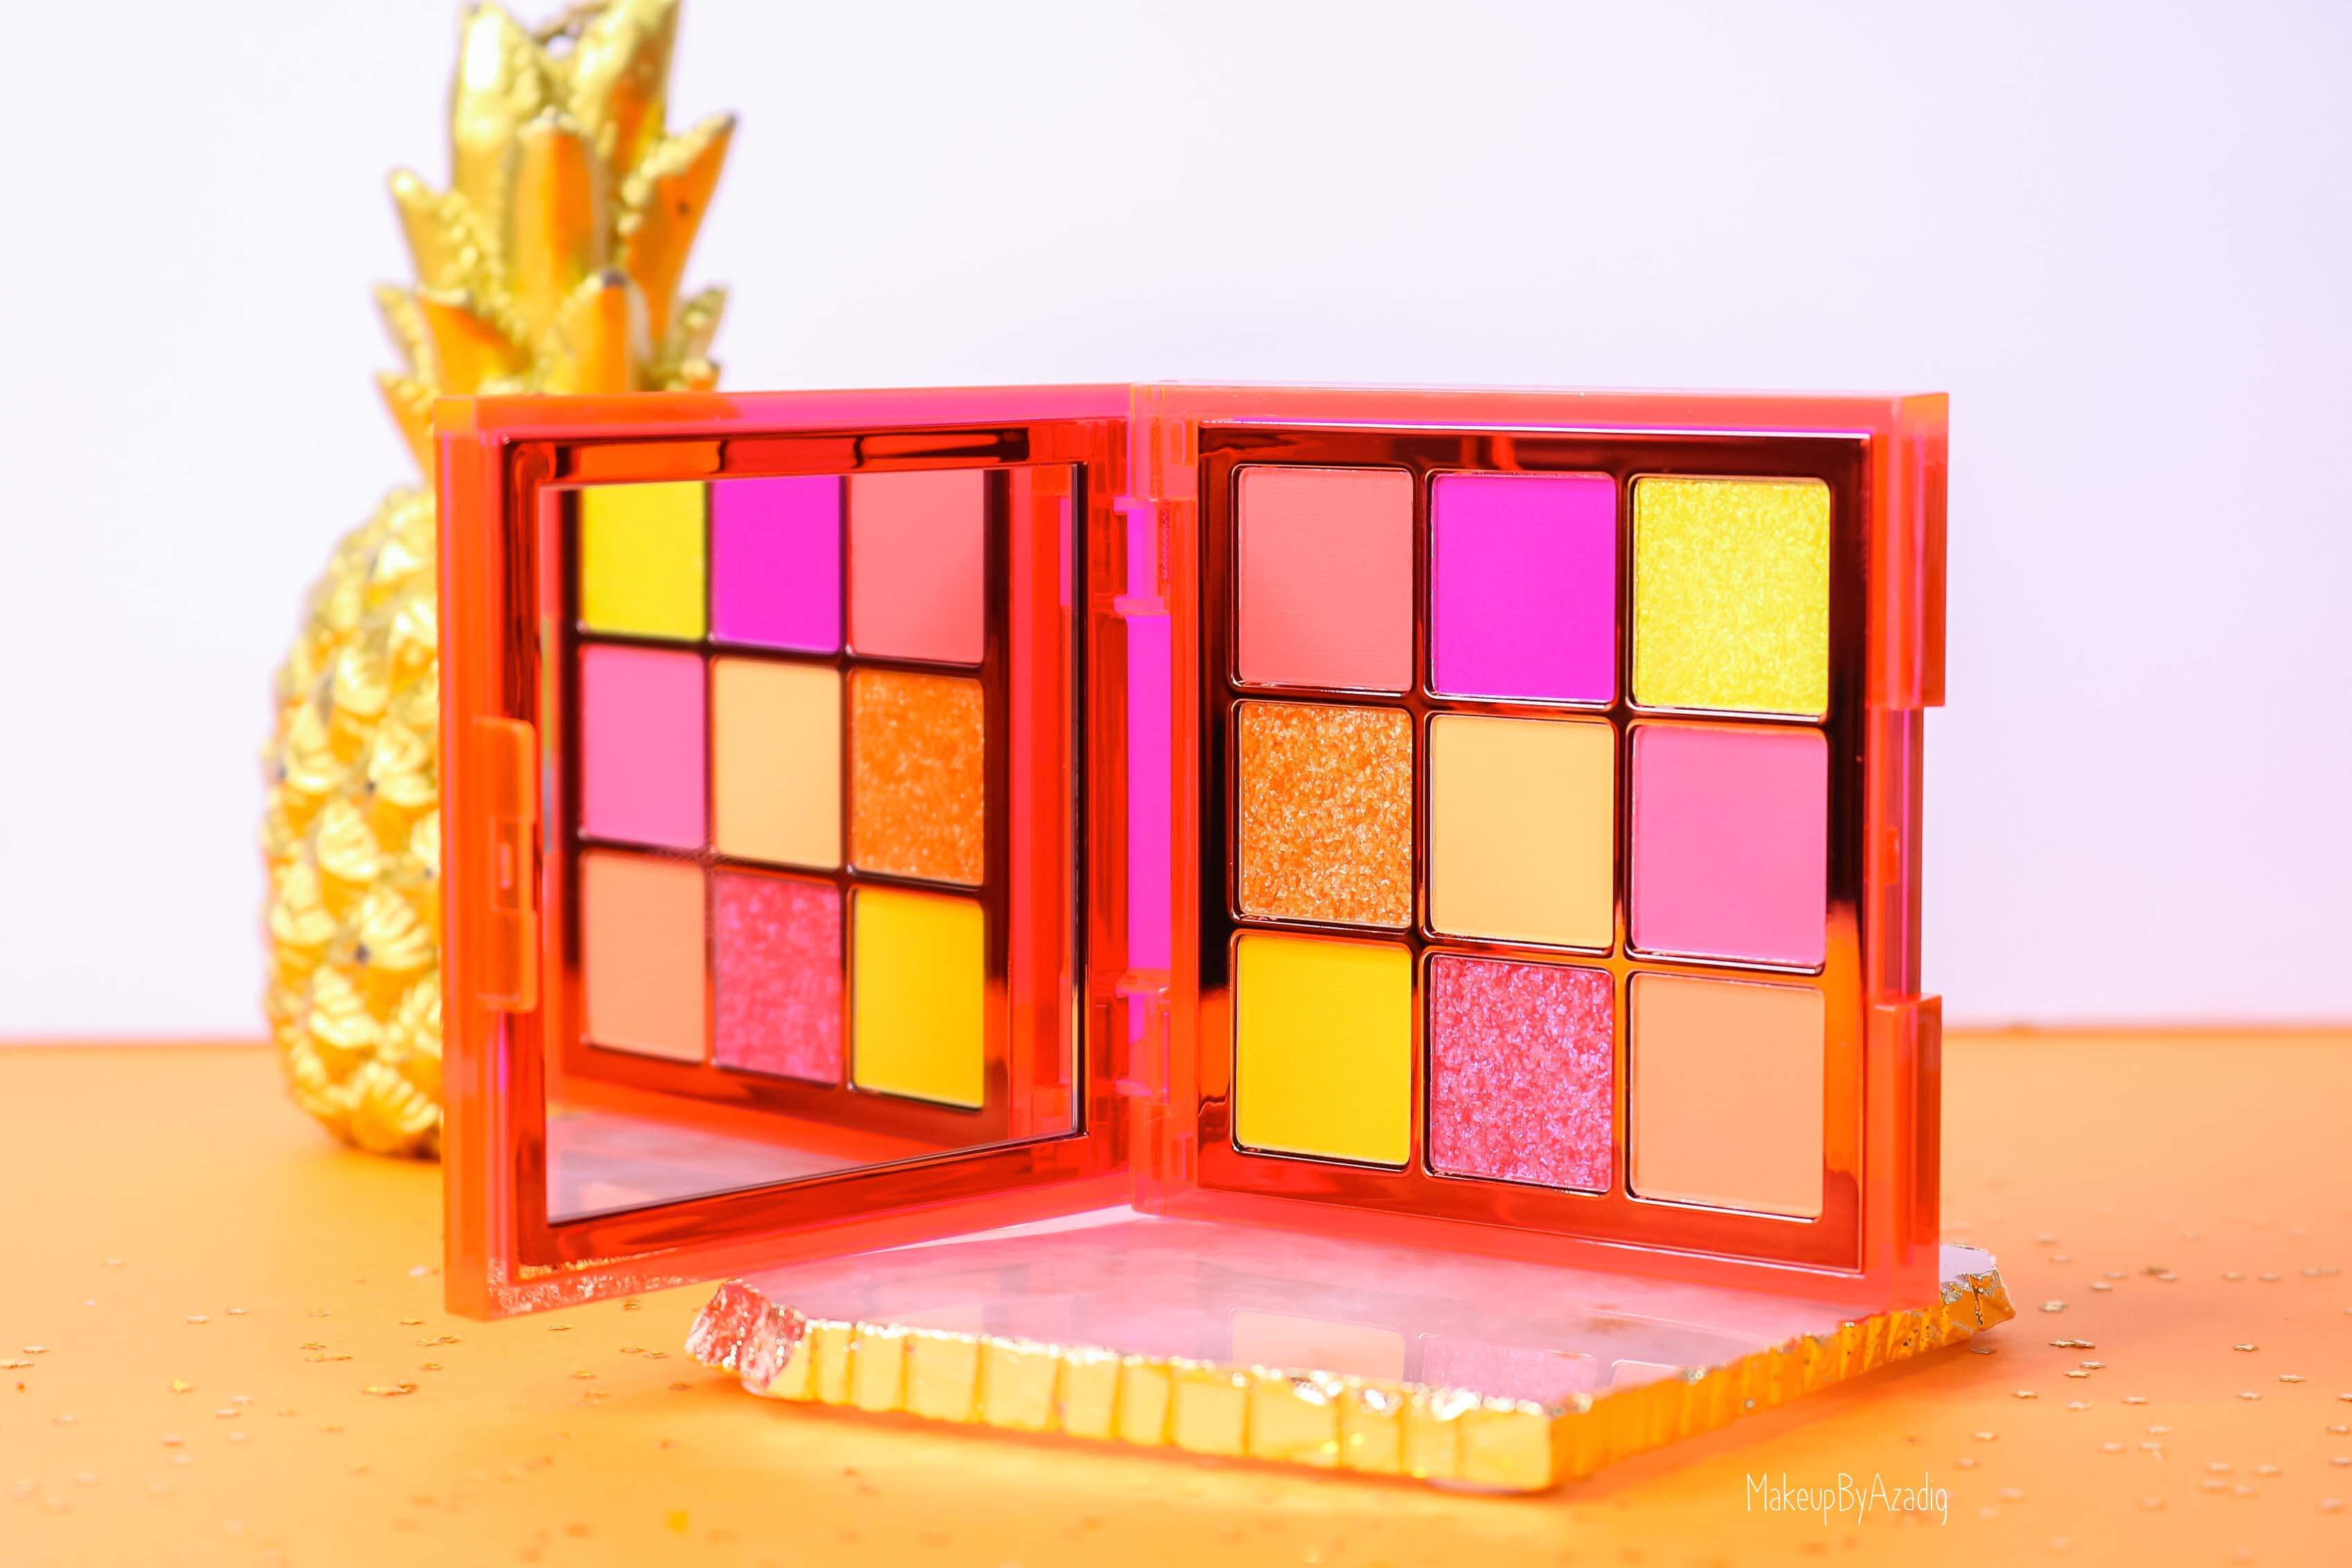 revue-review-palette-neon-obsession-huda-beauty-orange-pink-green-neon-palette-fard-paupieres-fluo-swatch-avis-prix-makeupbyazadig-glow